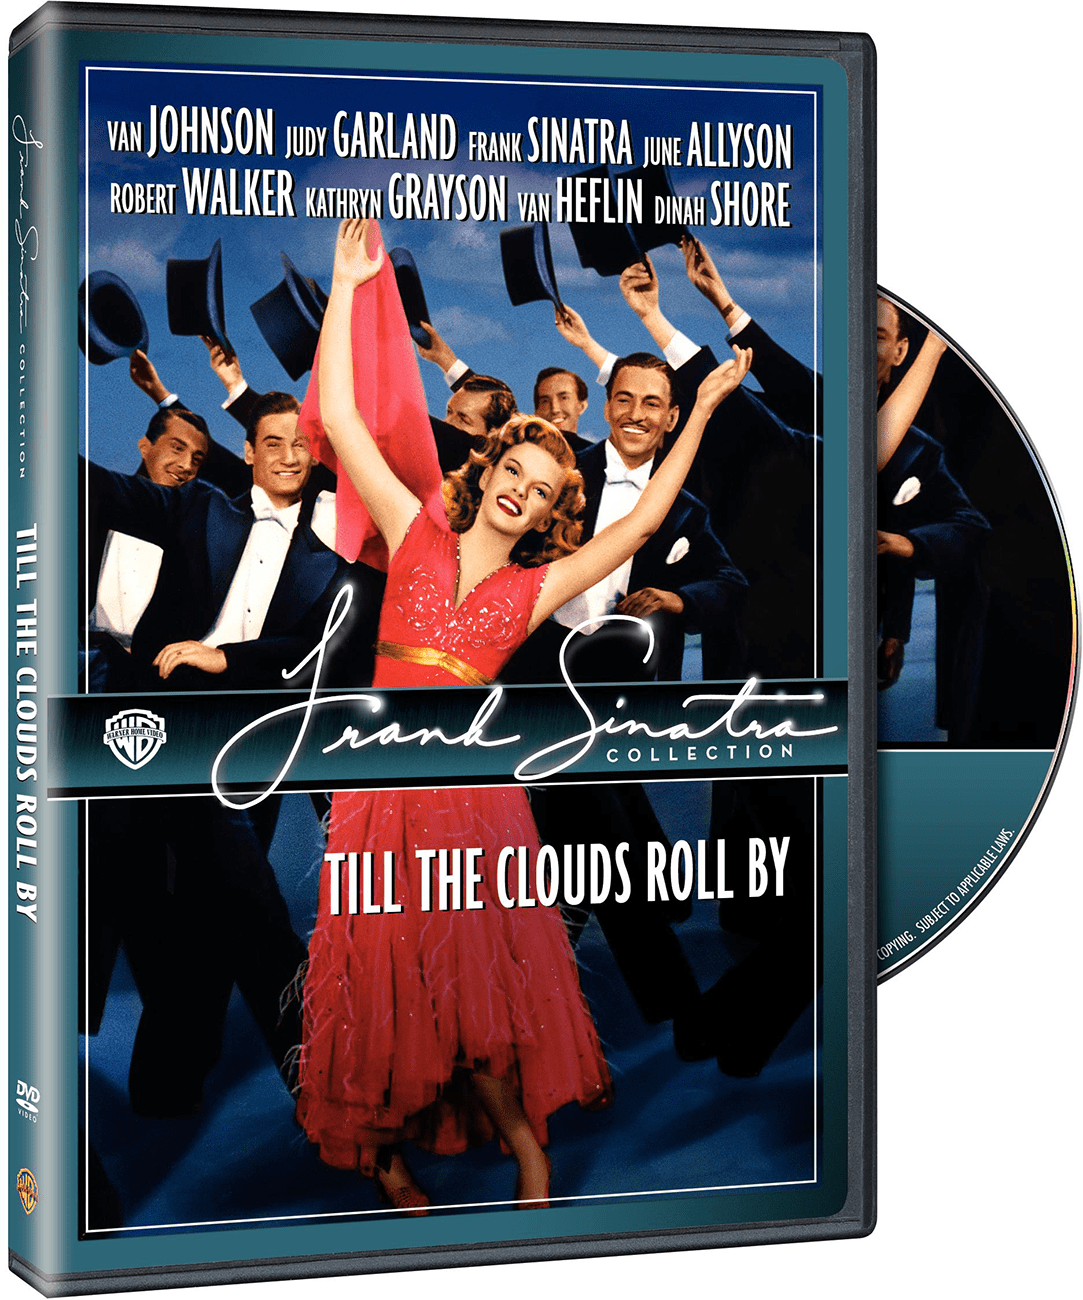 """2008 DVD that was part of """"The Frank Sinatra"""" collection"""